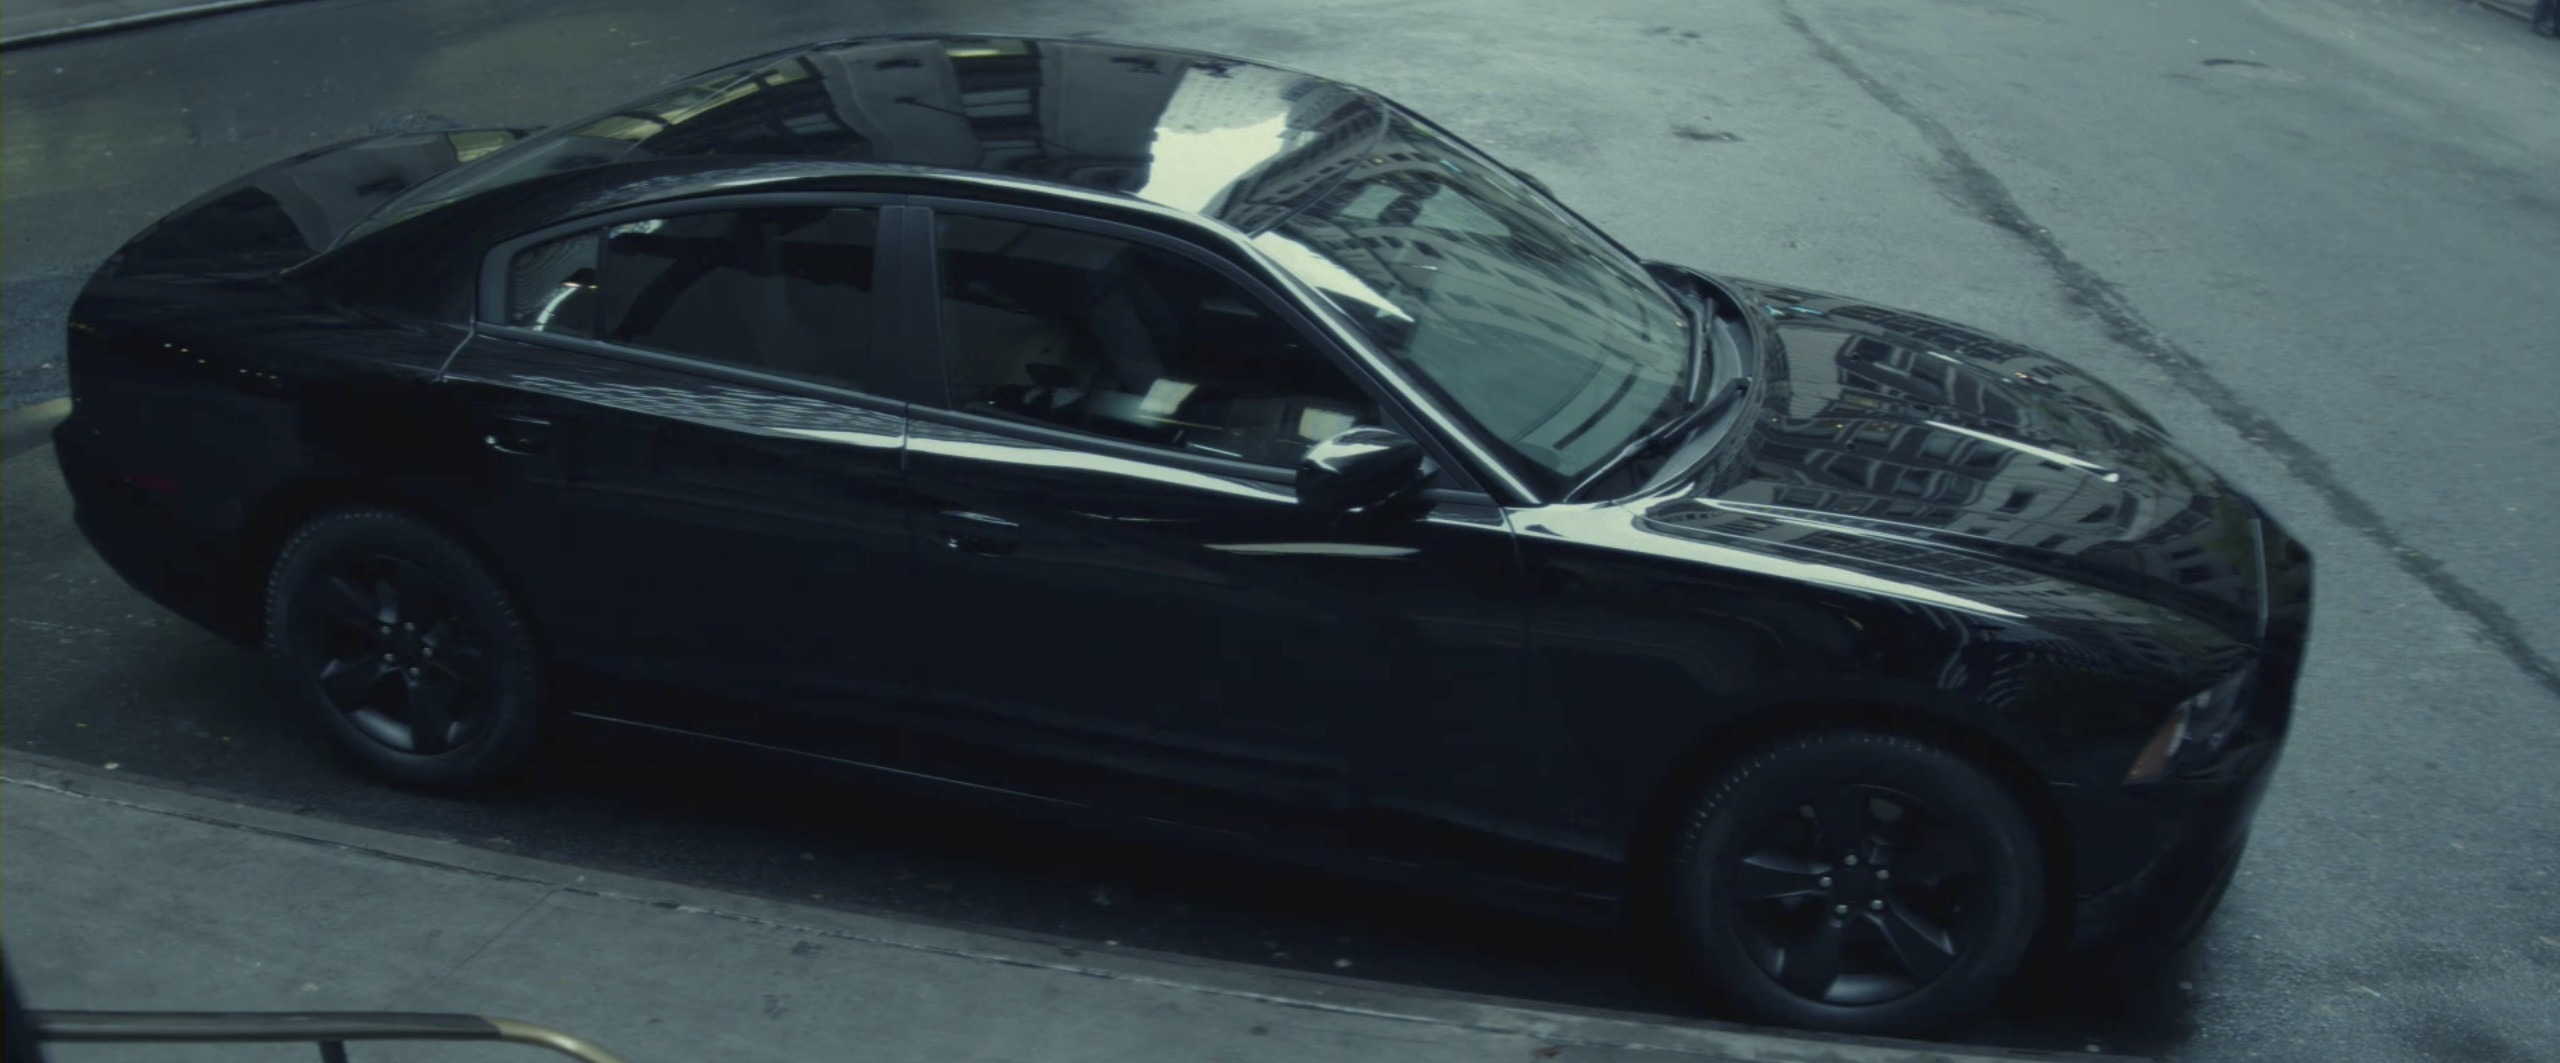 John Wick Dodge Charger